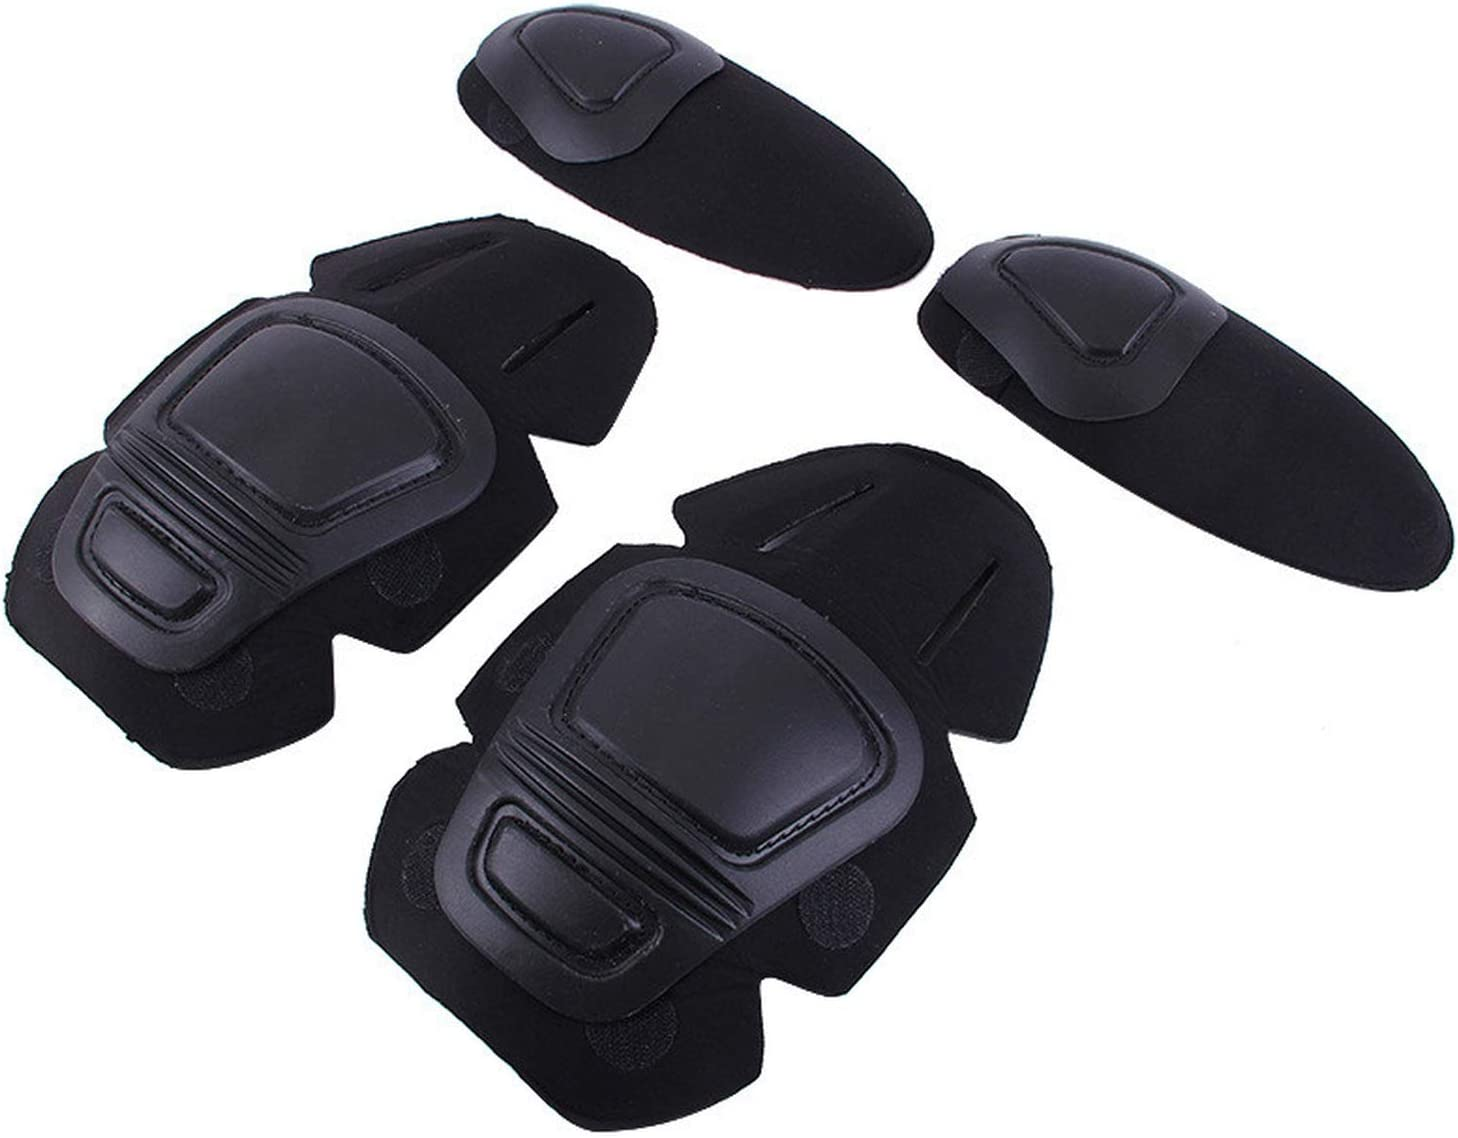 Tactical Knee and Elbow Protector Pad For Paintball Airsoft Combat Uniform Military Suit 2 knee pads /& 2 elbow pads//Set,BLACK